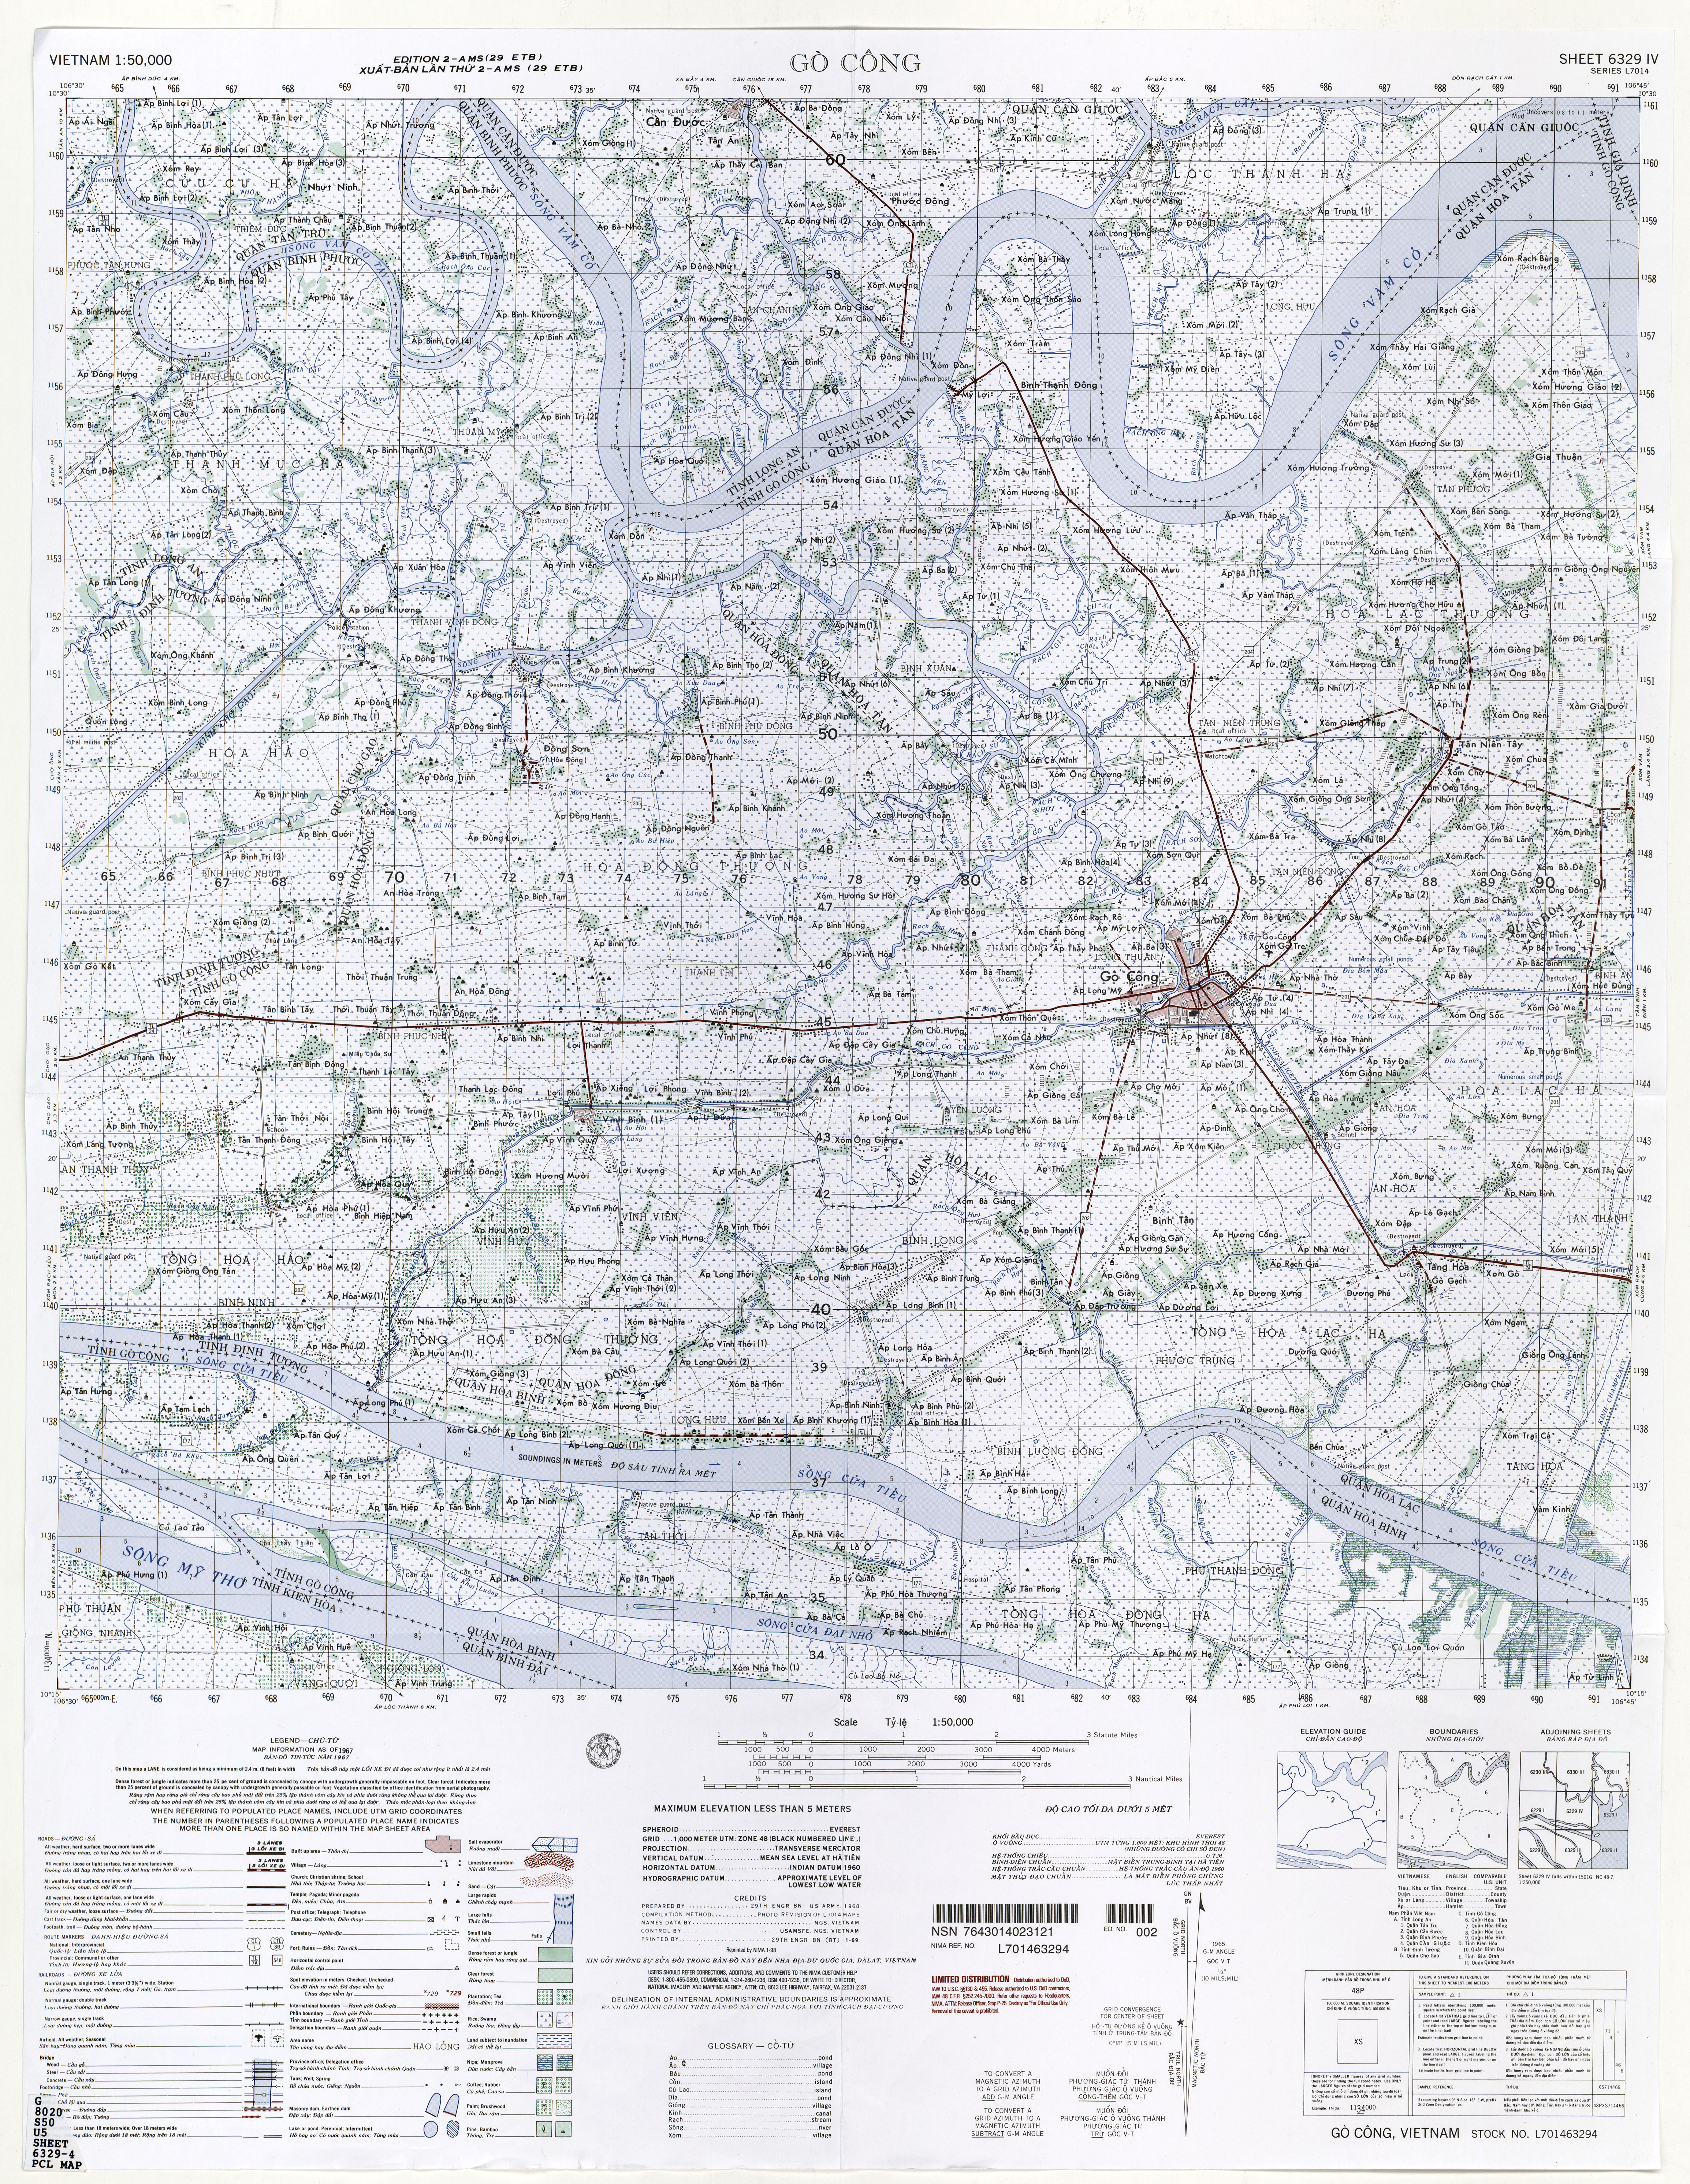 Vietnam Topographic Maps Perrycastaneda Map Collection Ut Us Army Maps